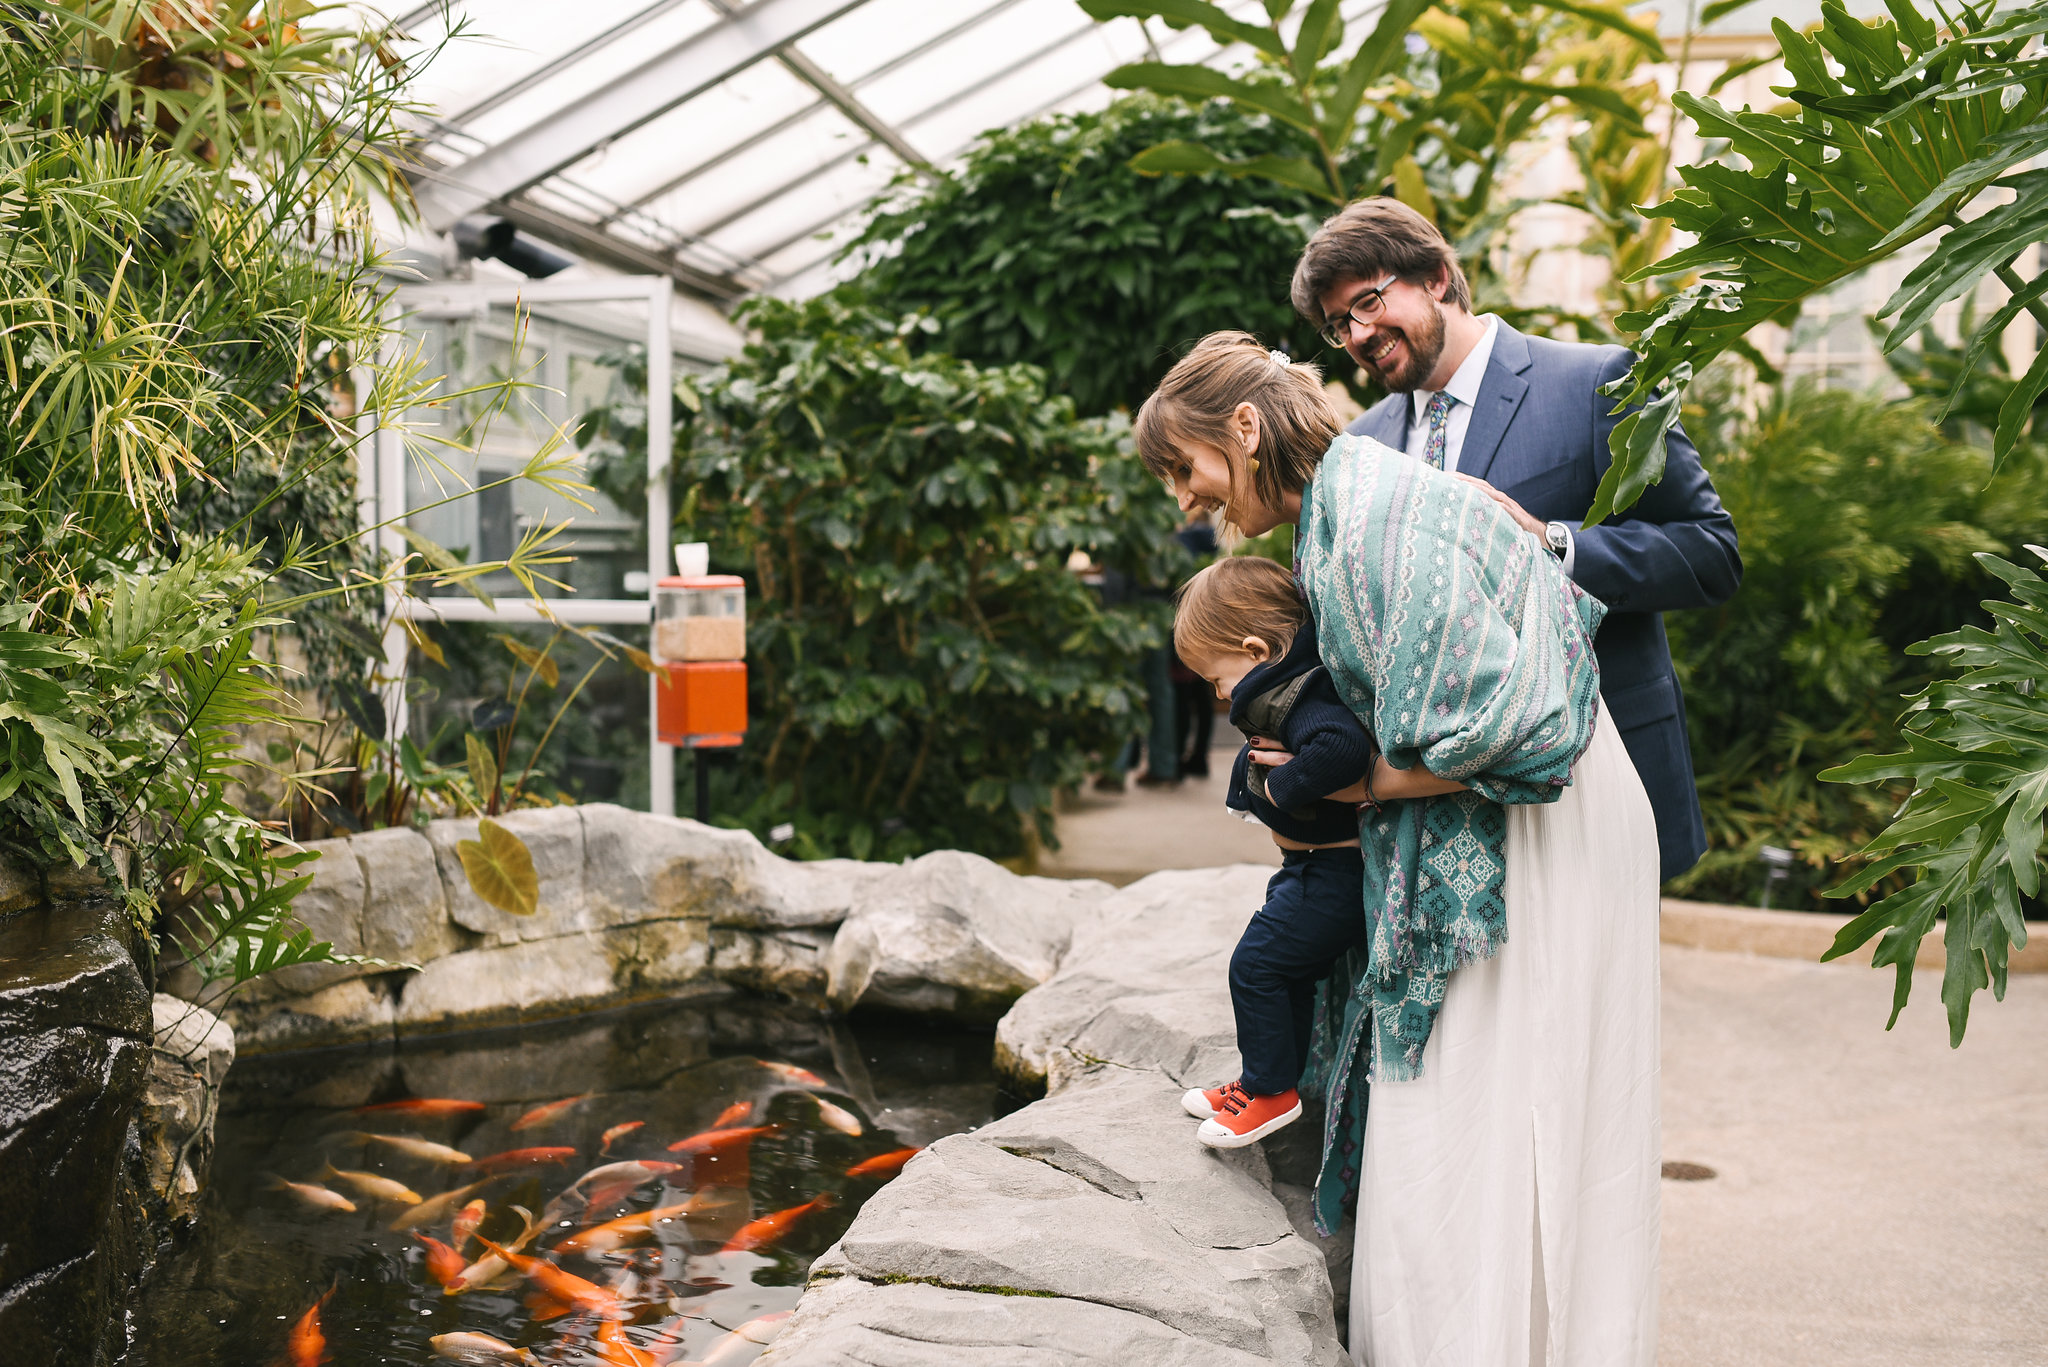 Rawlings Conservatory, Druid Hill Park, Intimate Wedding, Nature, Baltimore Wedding Photographer, Romantic, Classic, Bride and Groom with Son Looking at Koi Fish, Family Portrait